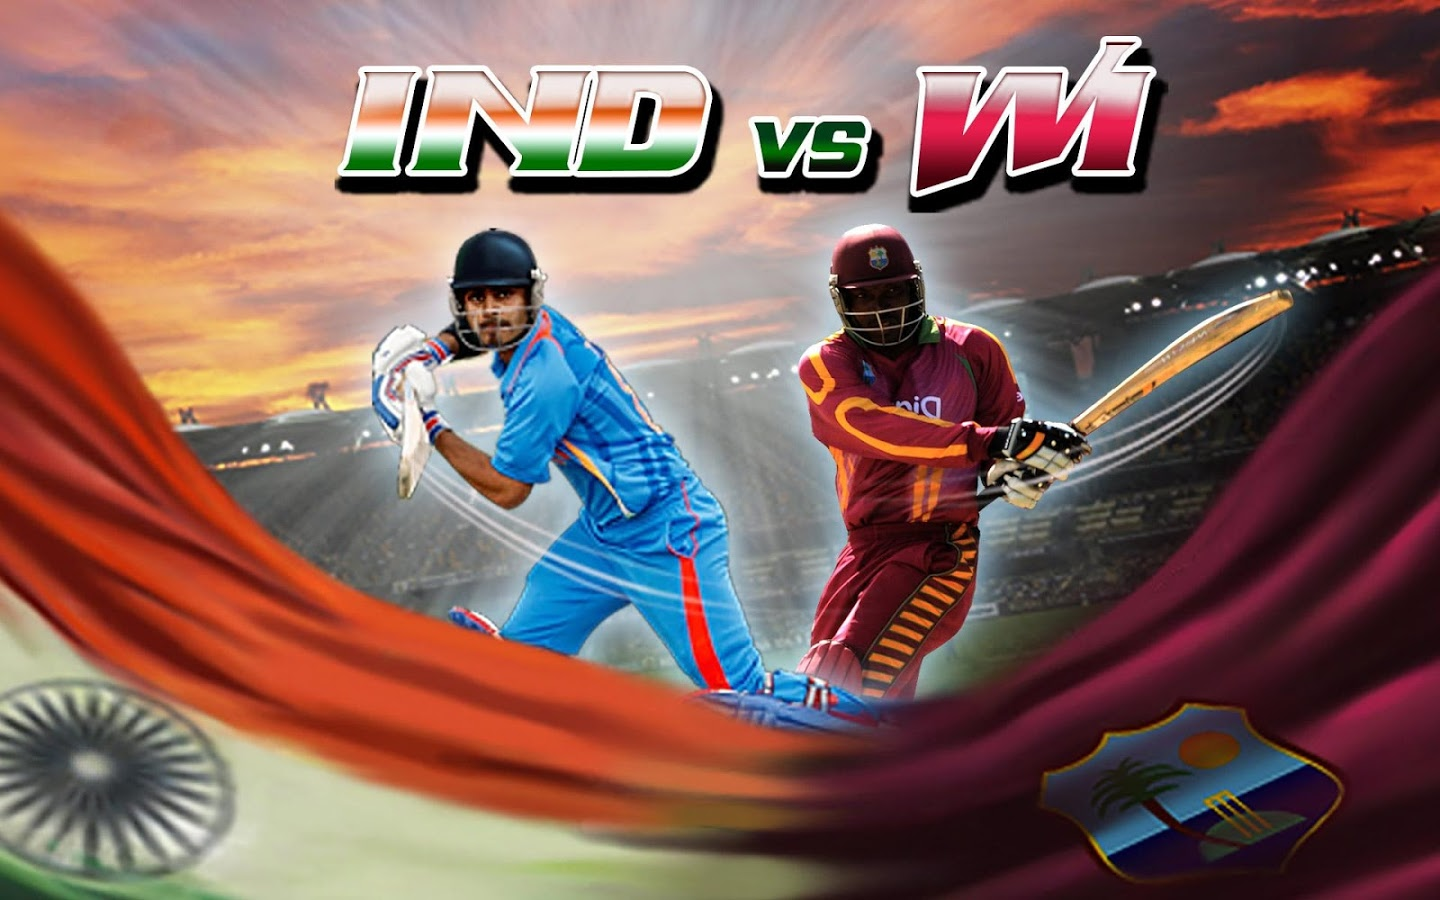 India to play second Test match against West Indies at Hyderabad from Oct 12 to 16